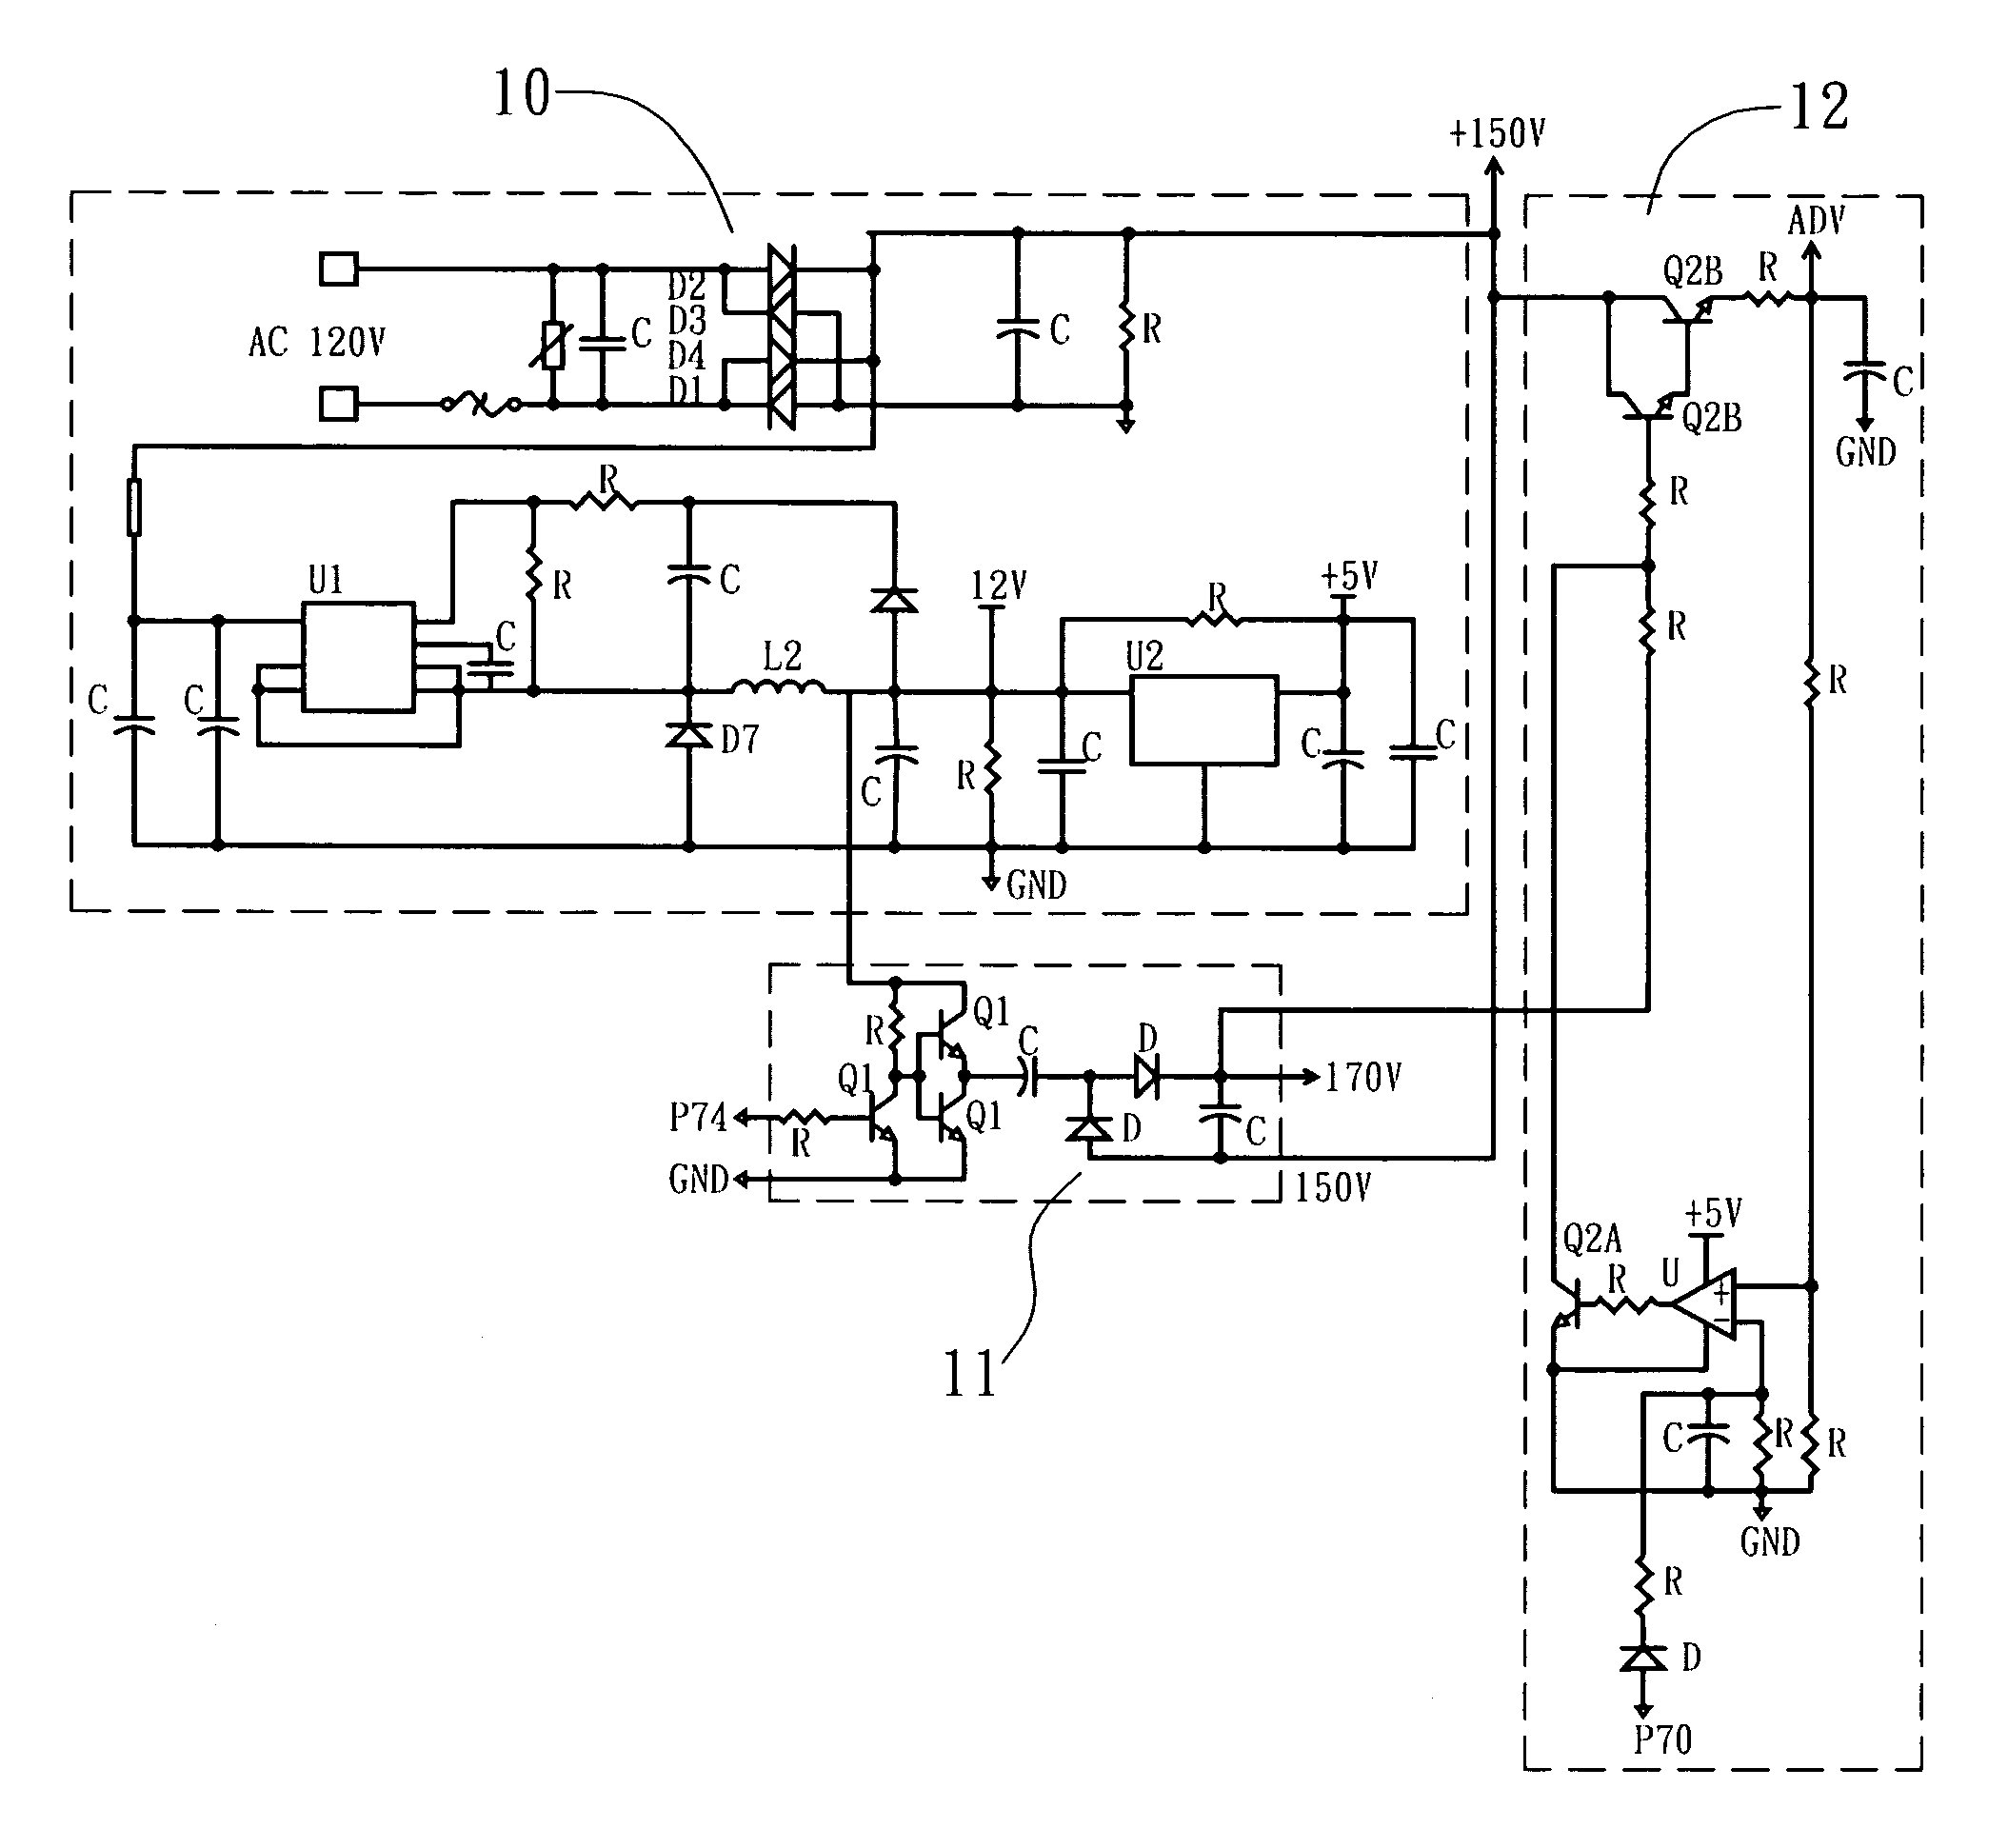 Bldc Ceiling Fan Circuit Diagram